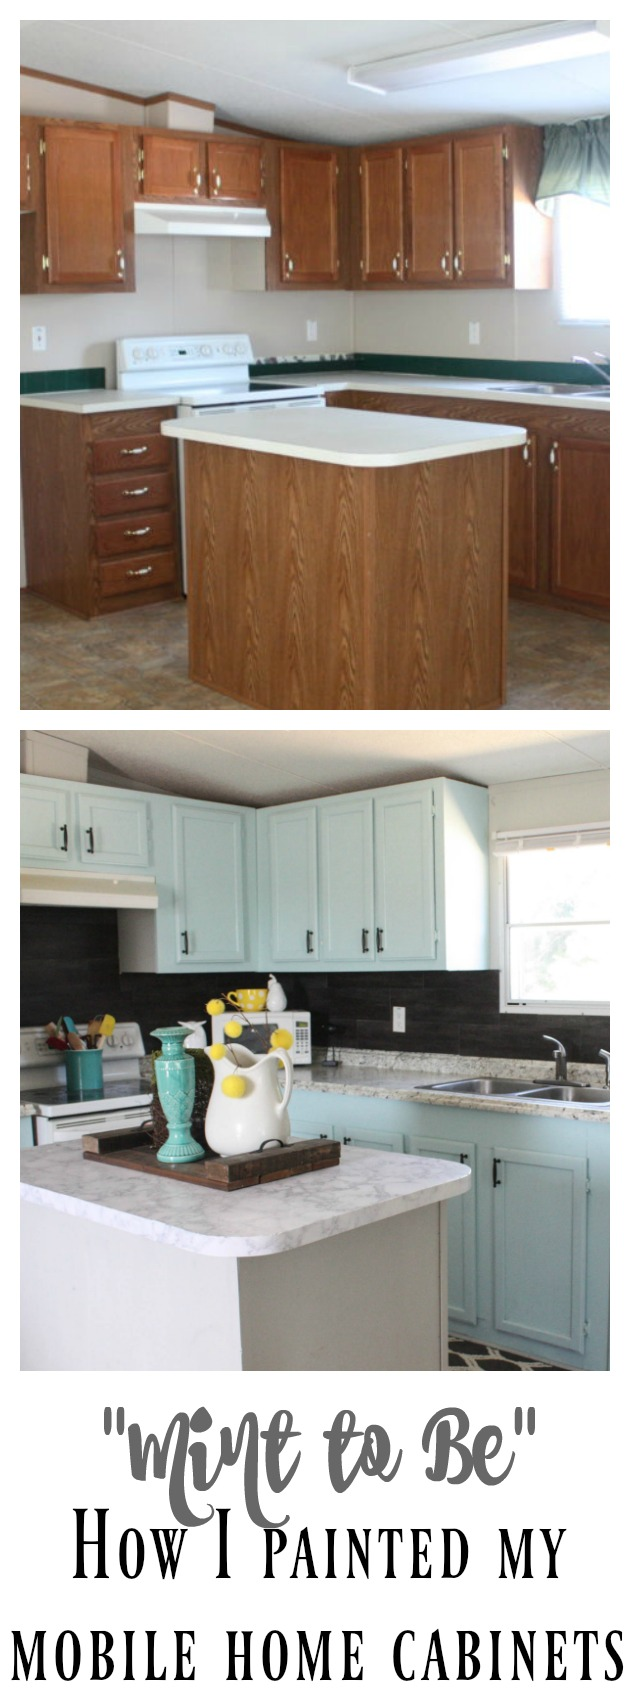 What Are Mobile Home Cabinets Made Of Part - 35: Mobile Home Cabinet Makeover Using Mint To Be By Valspar! Get The Ins And  Outs